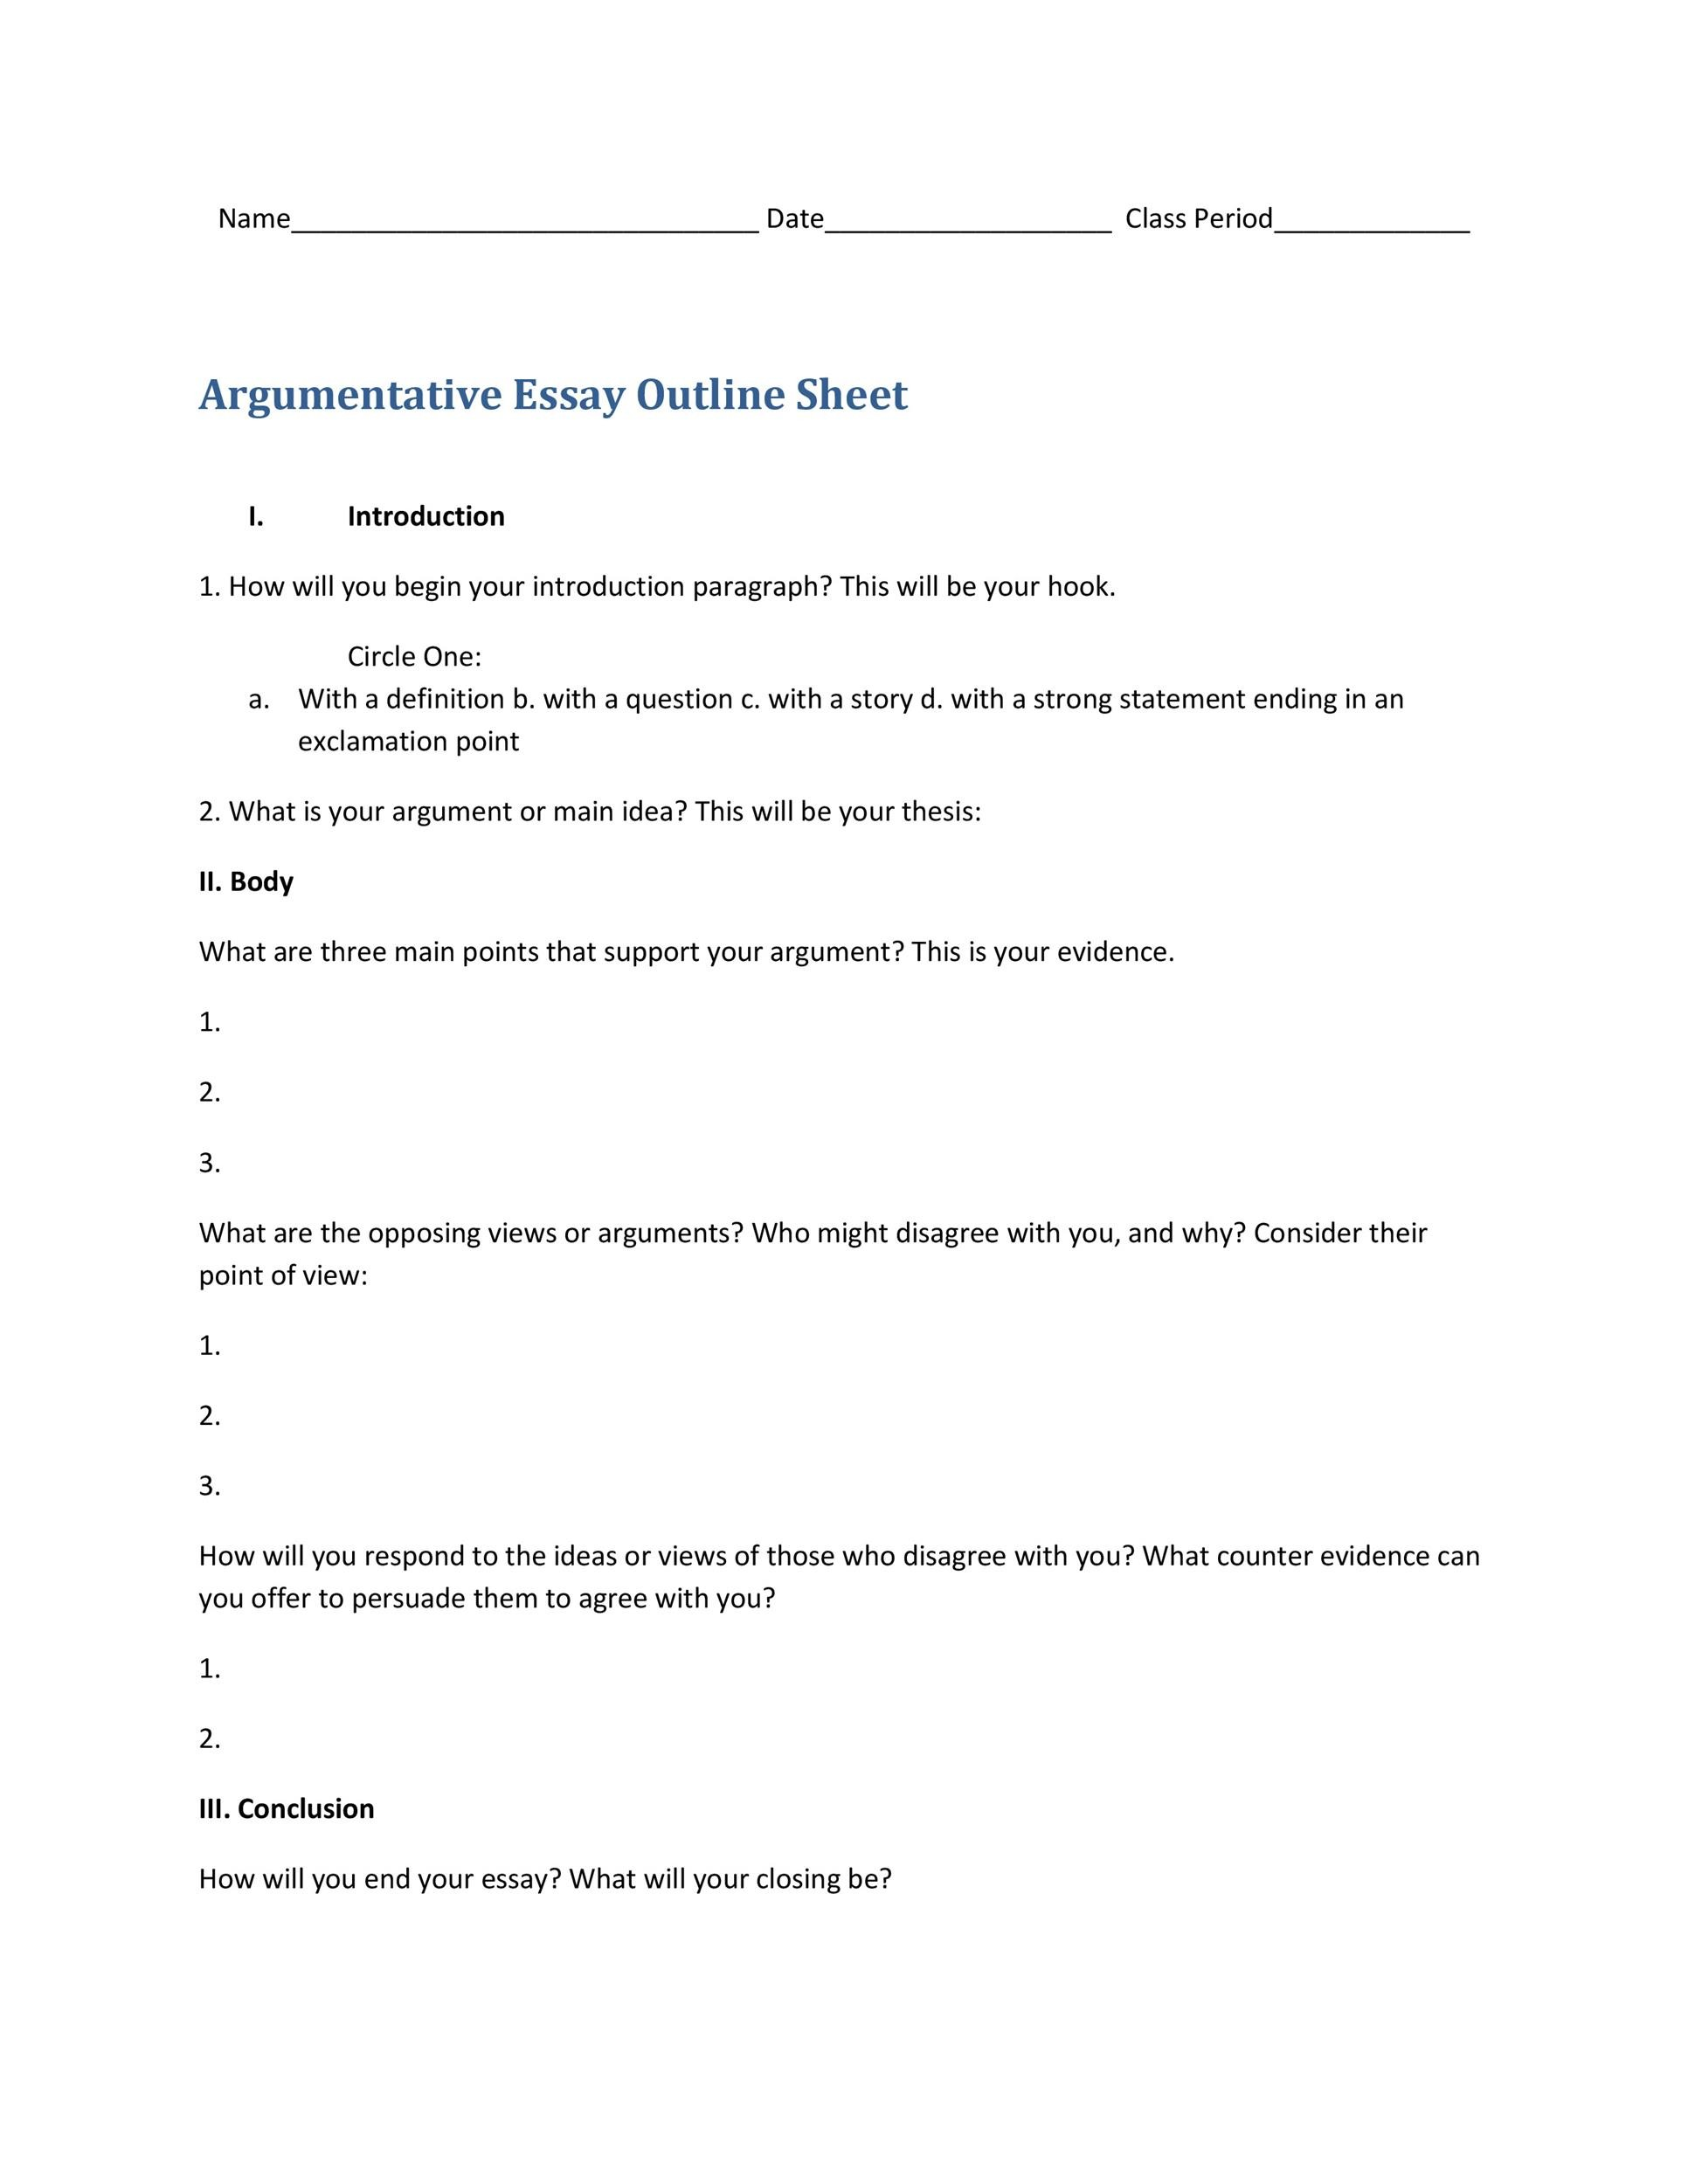 Essay outline template argumentative